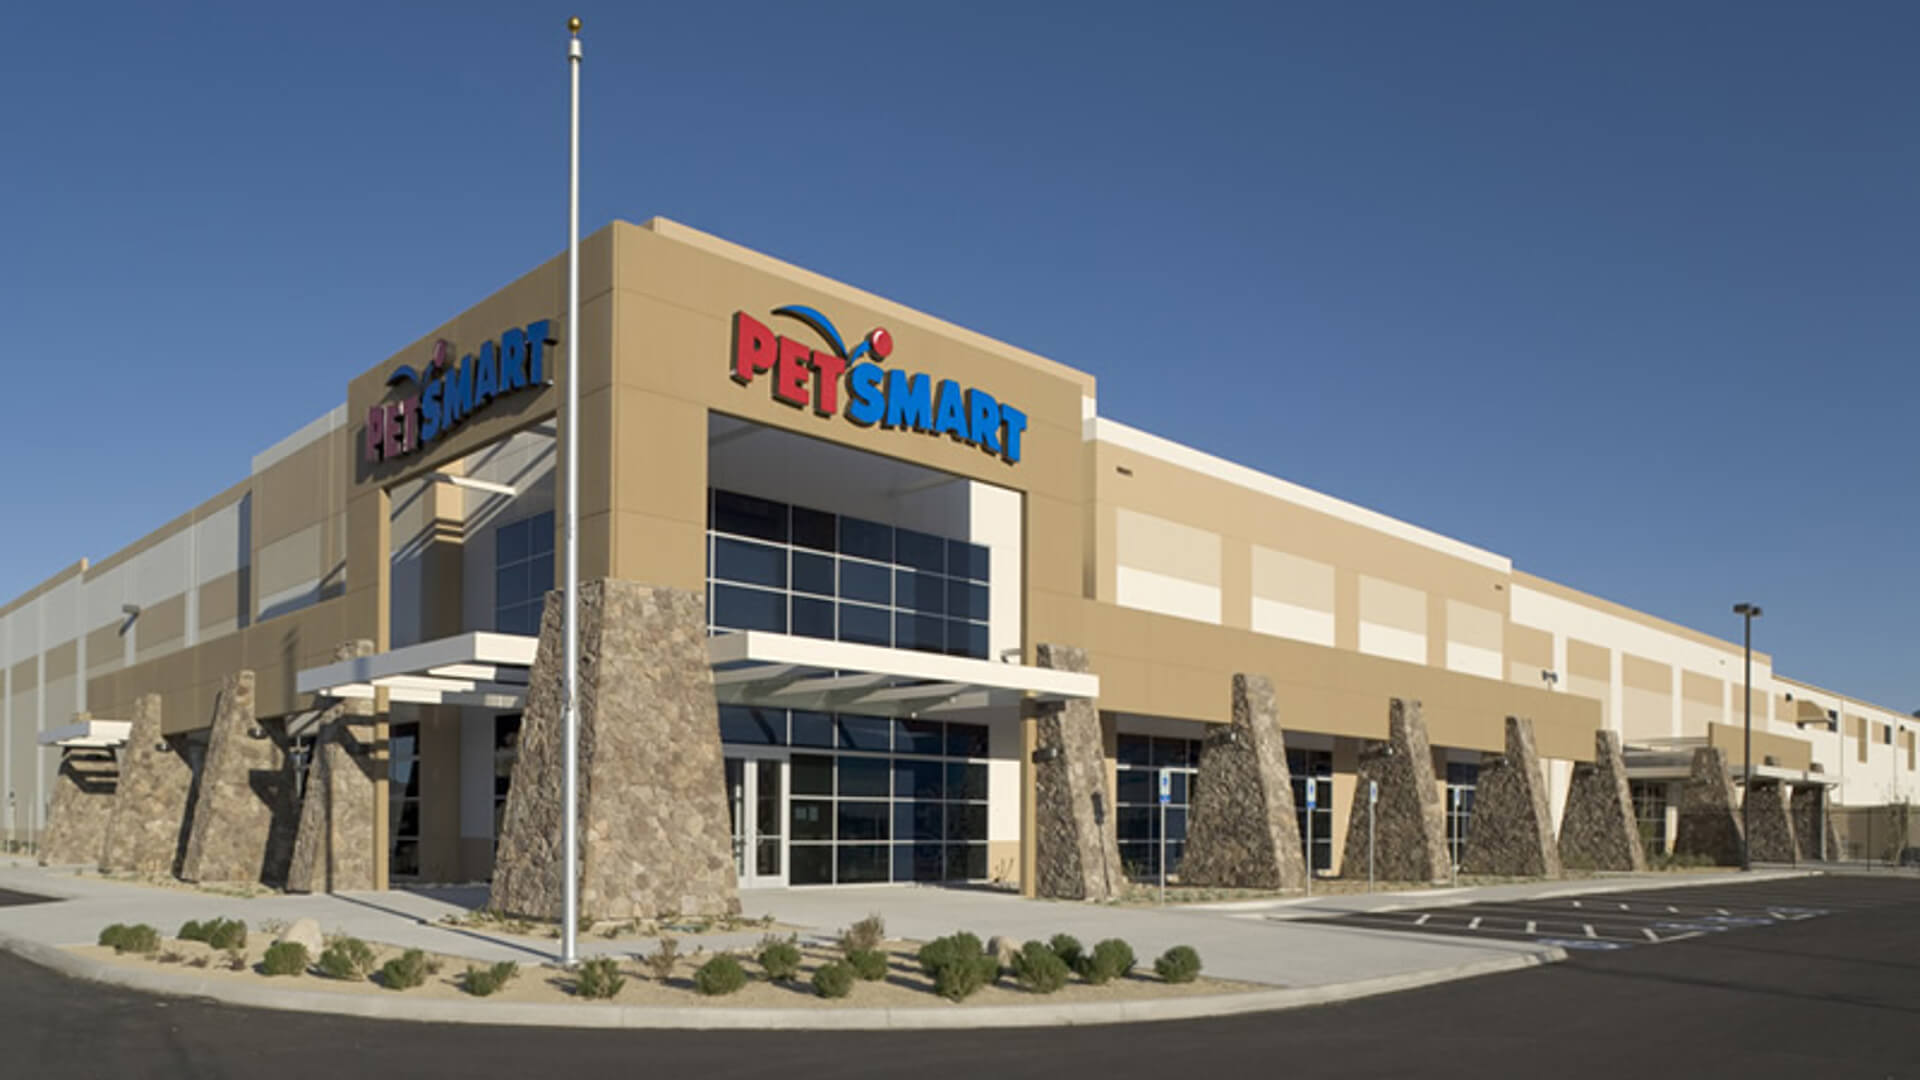 Petsmart | Polished Concrete | Dallas Fort Worth Texas